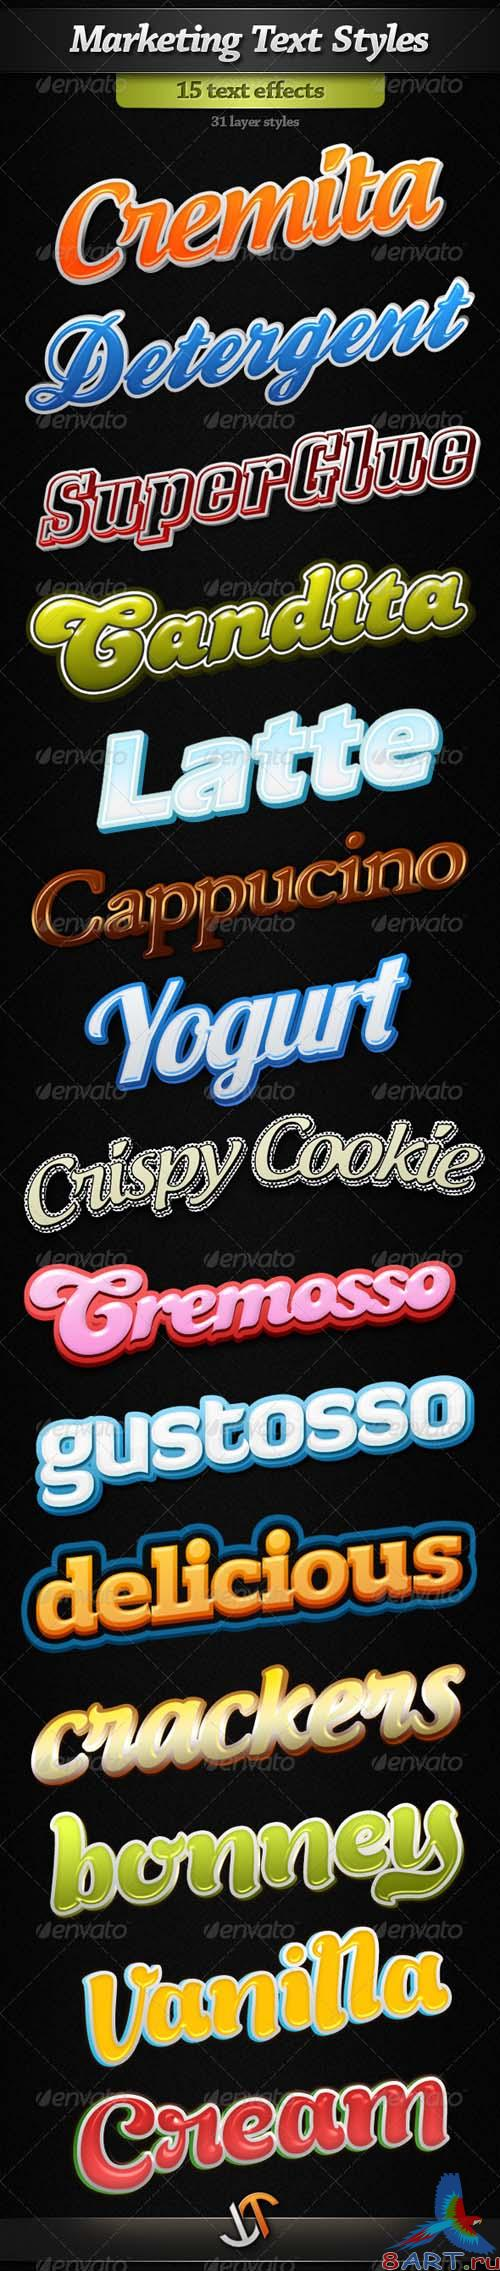 GraphicRiver Marketinng Text Styles - REUPLOAD